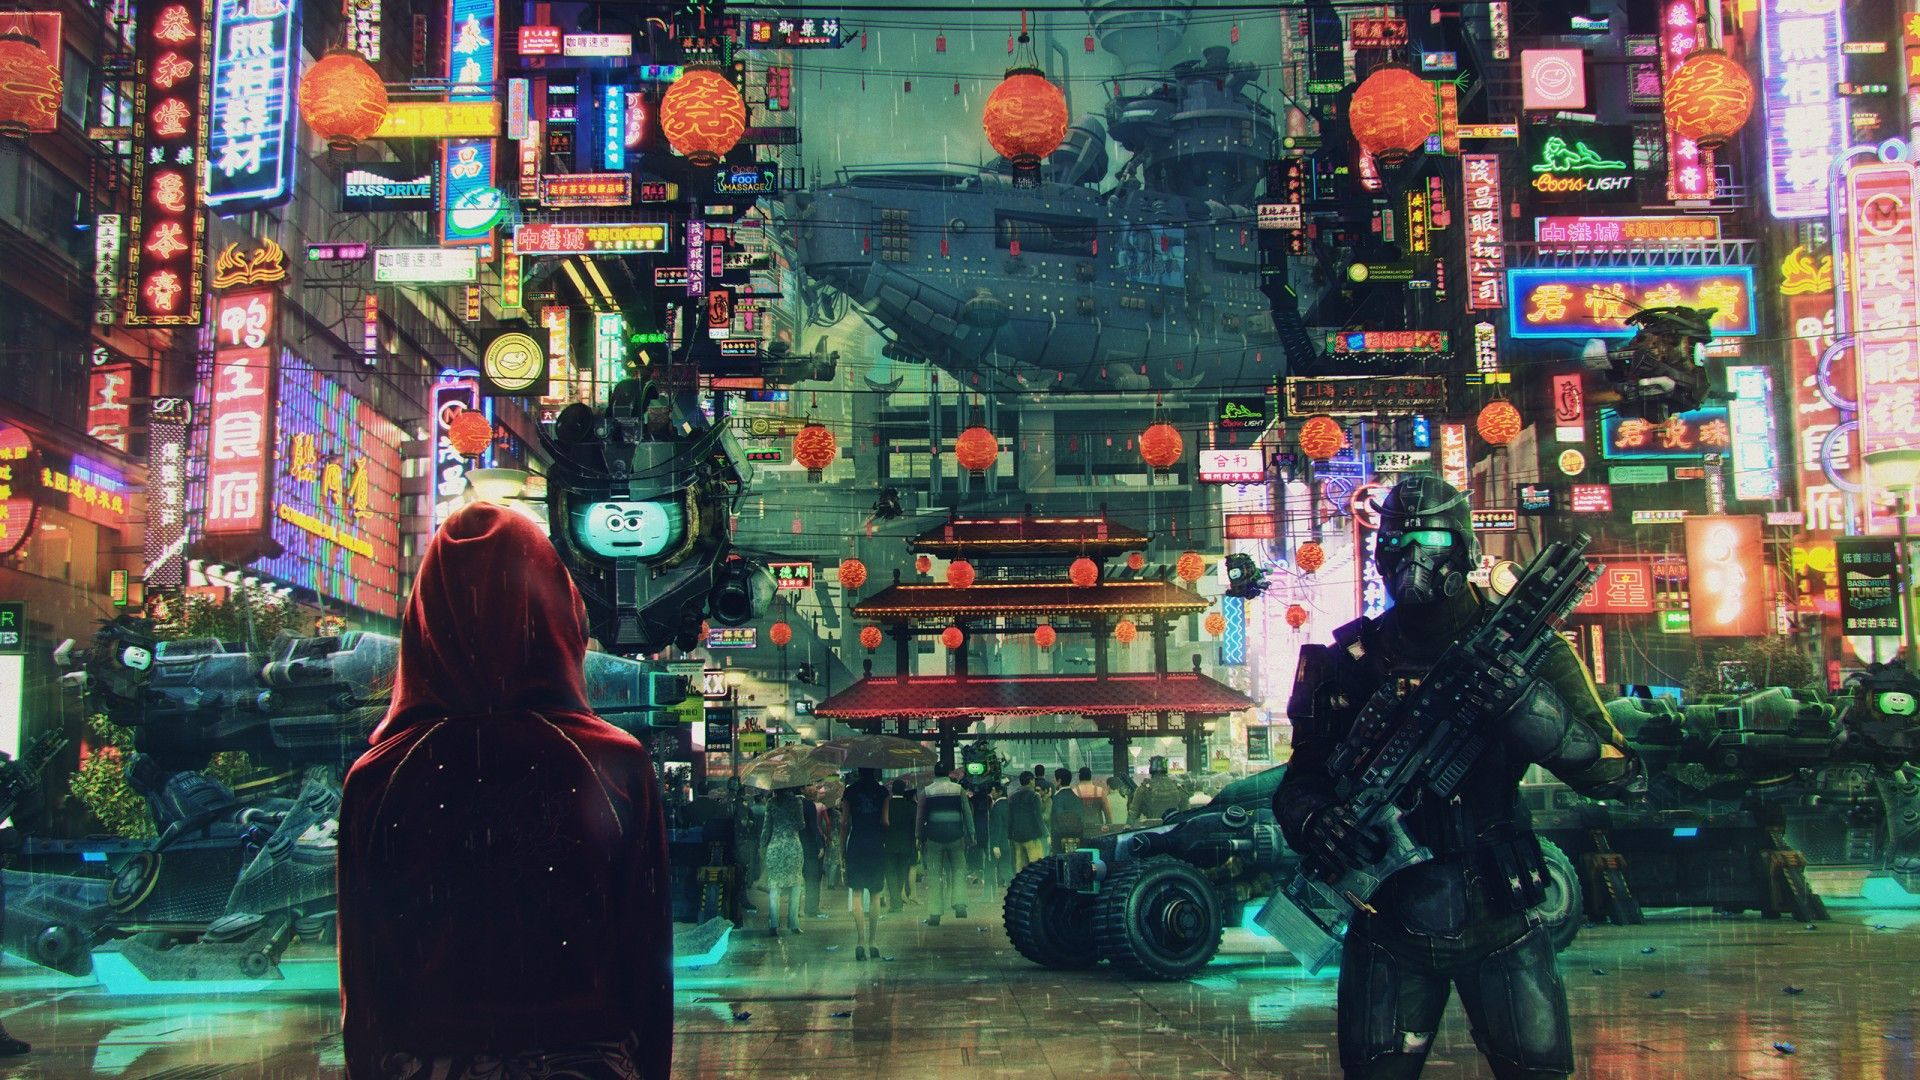 cyberpunk 2077 background